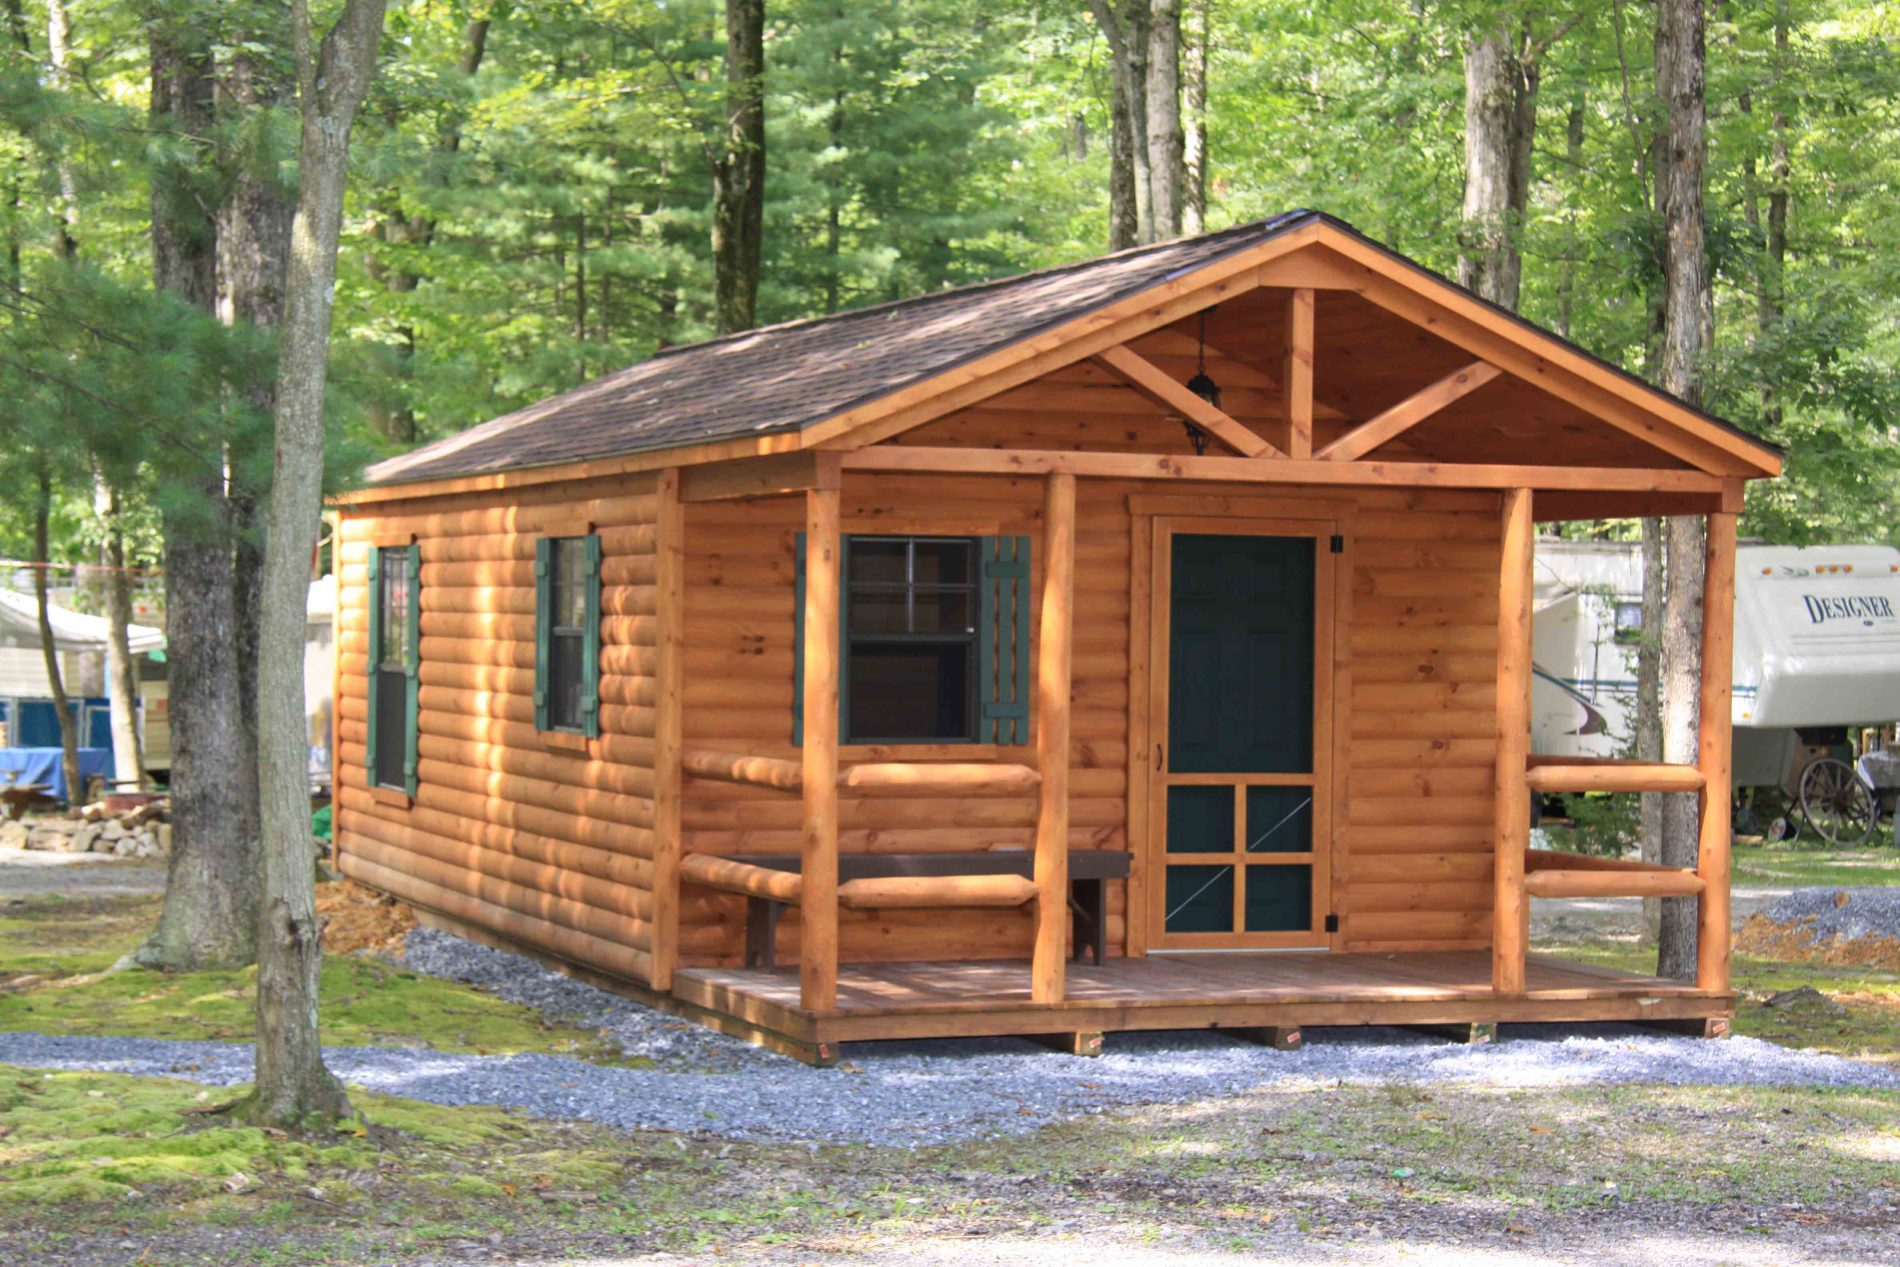 Campground Rustic Log Cabins And Kits For Sale Zook Cabins